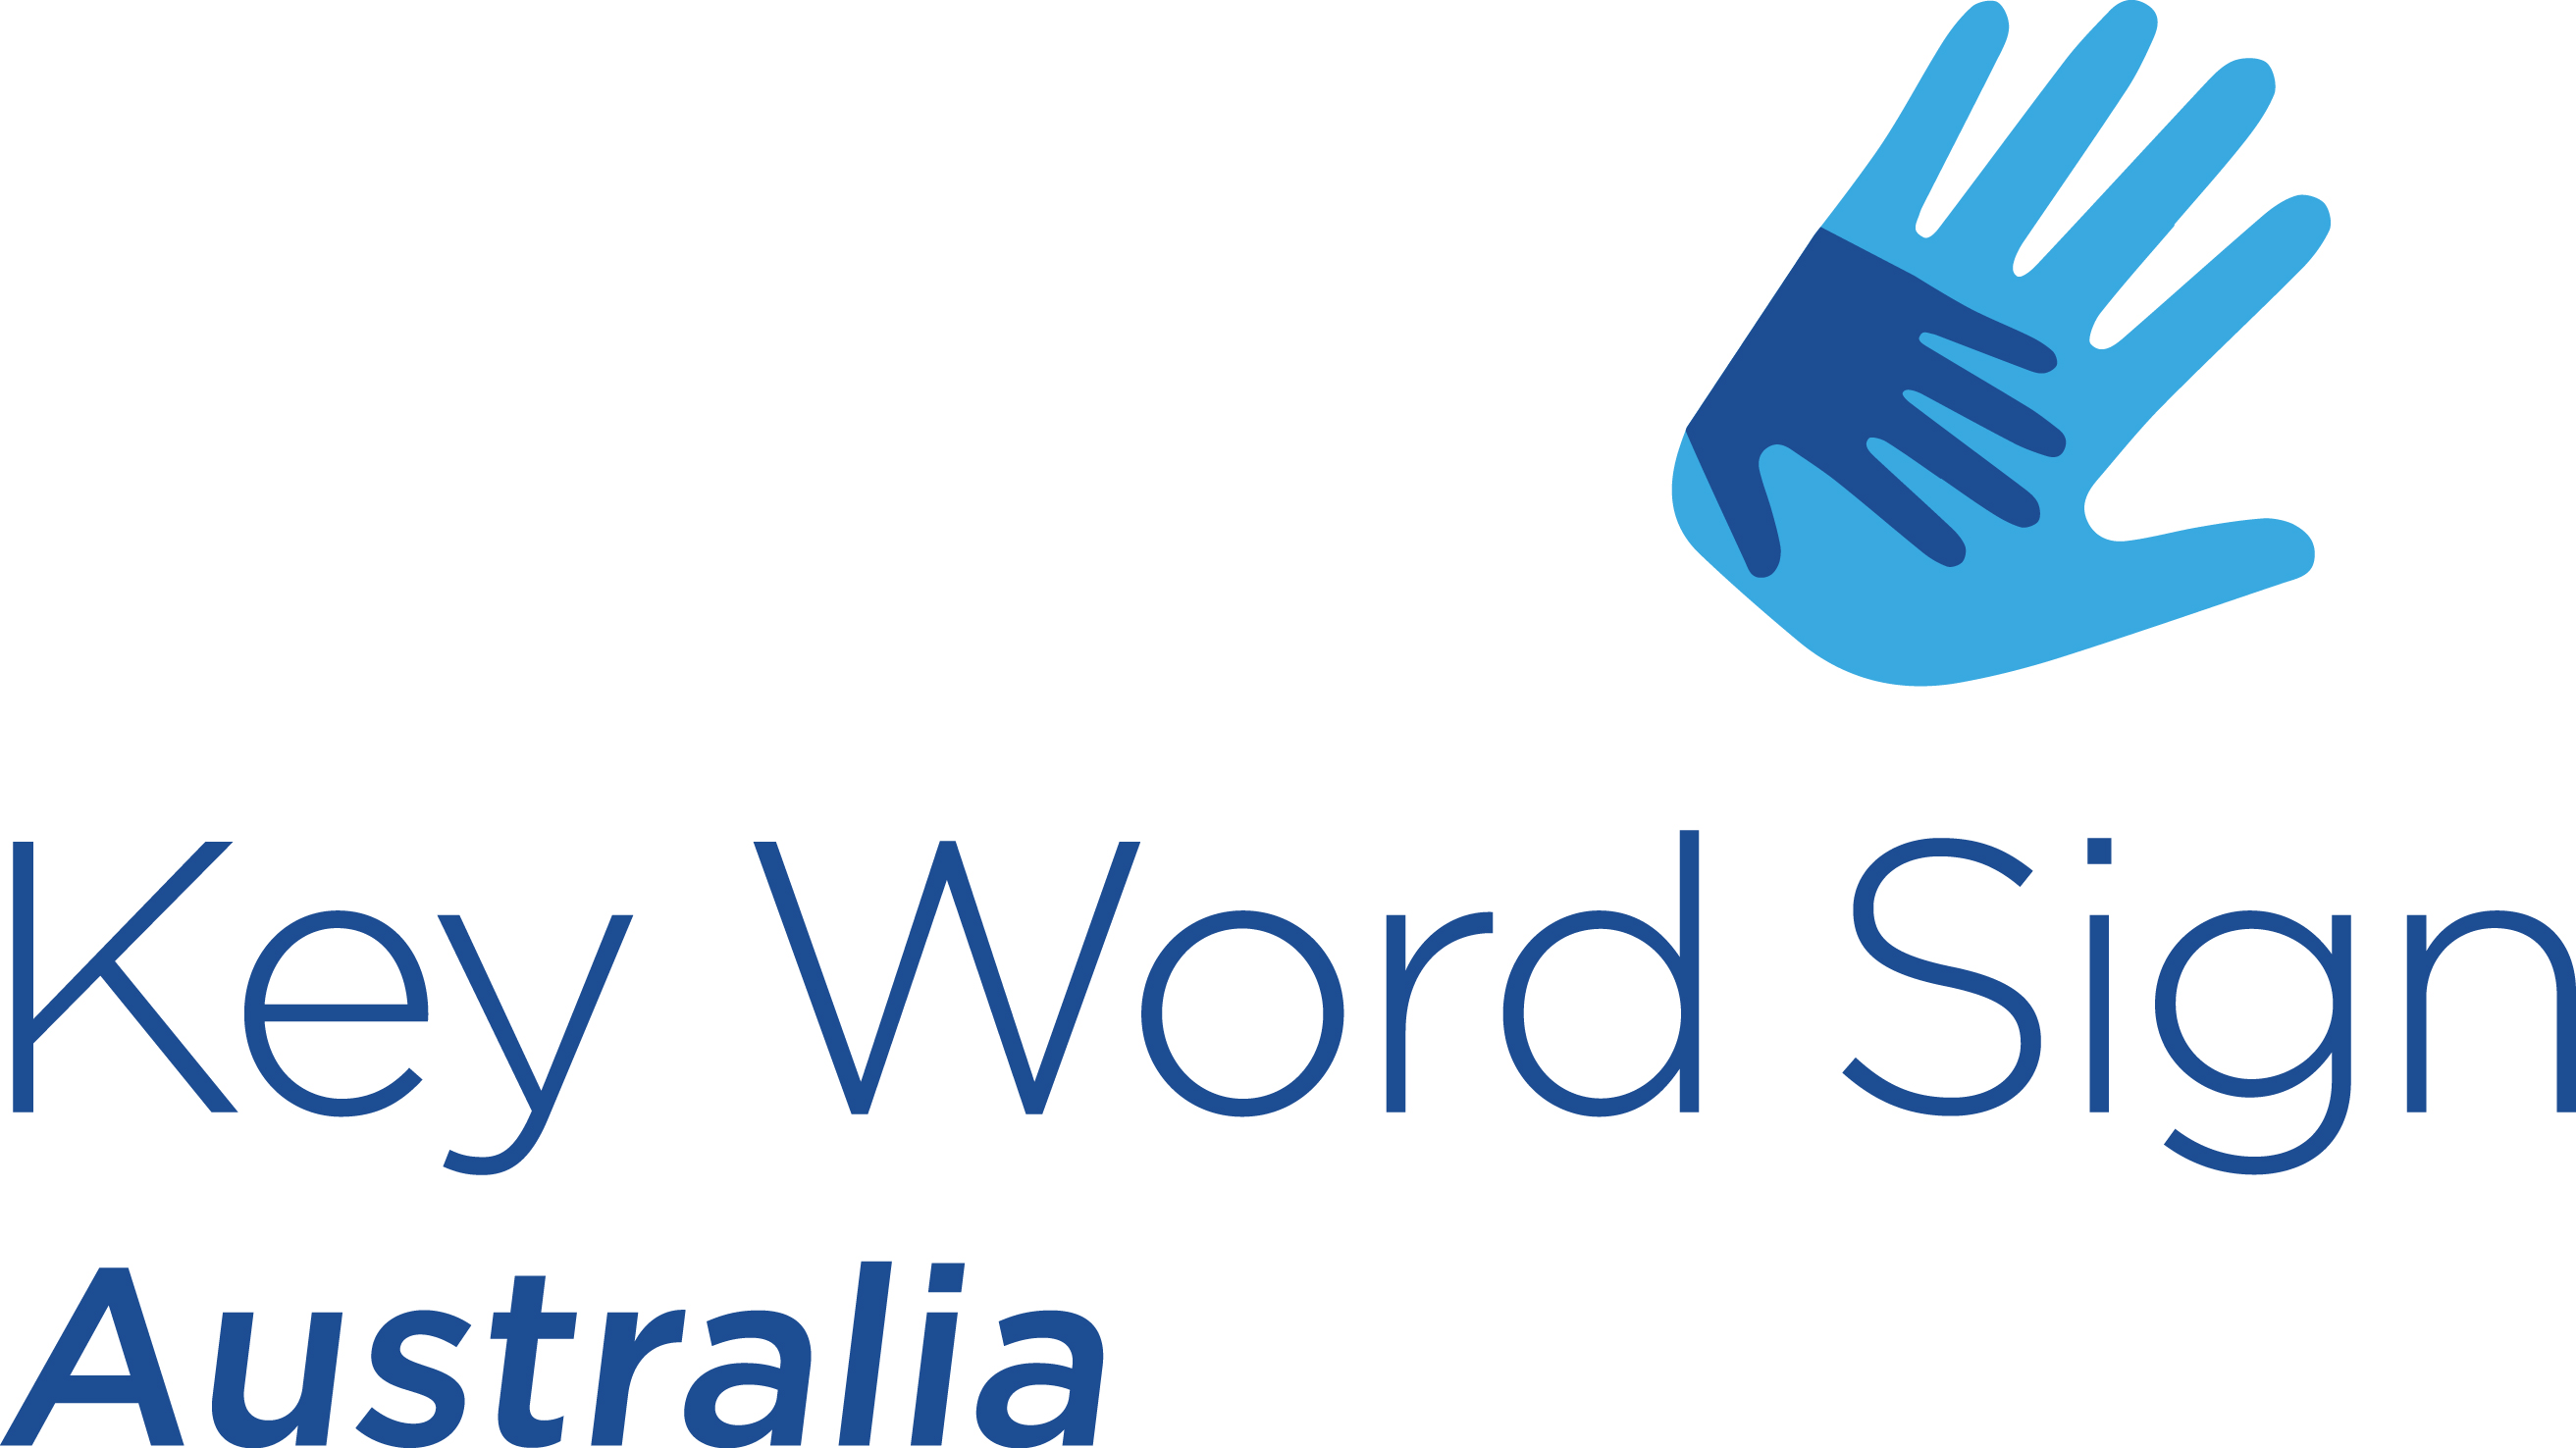 Key Word Sign Australia Scope Symbol Together With Standard Electrical Symbols Also Water Heater Rgb